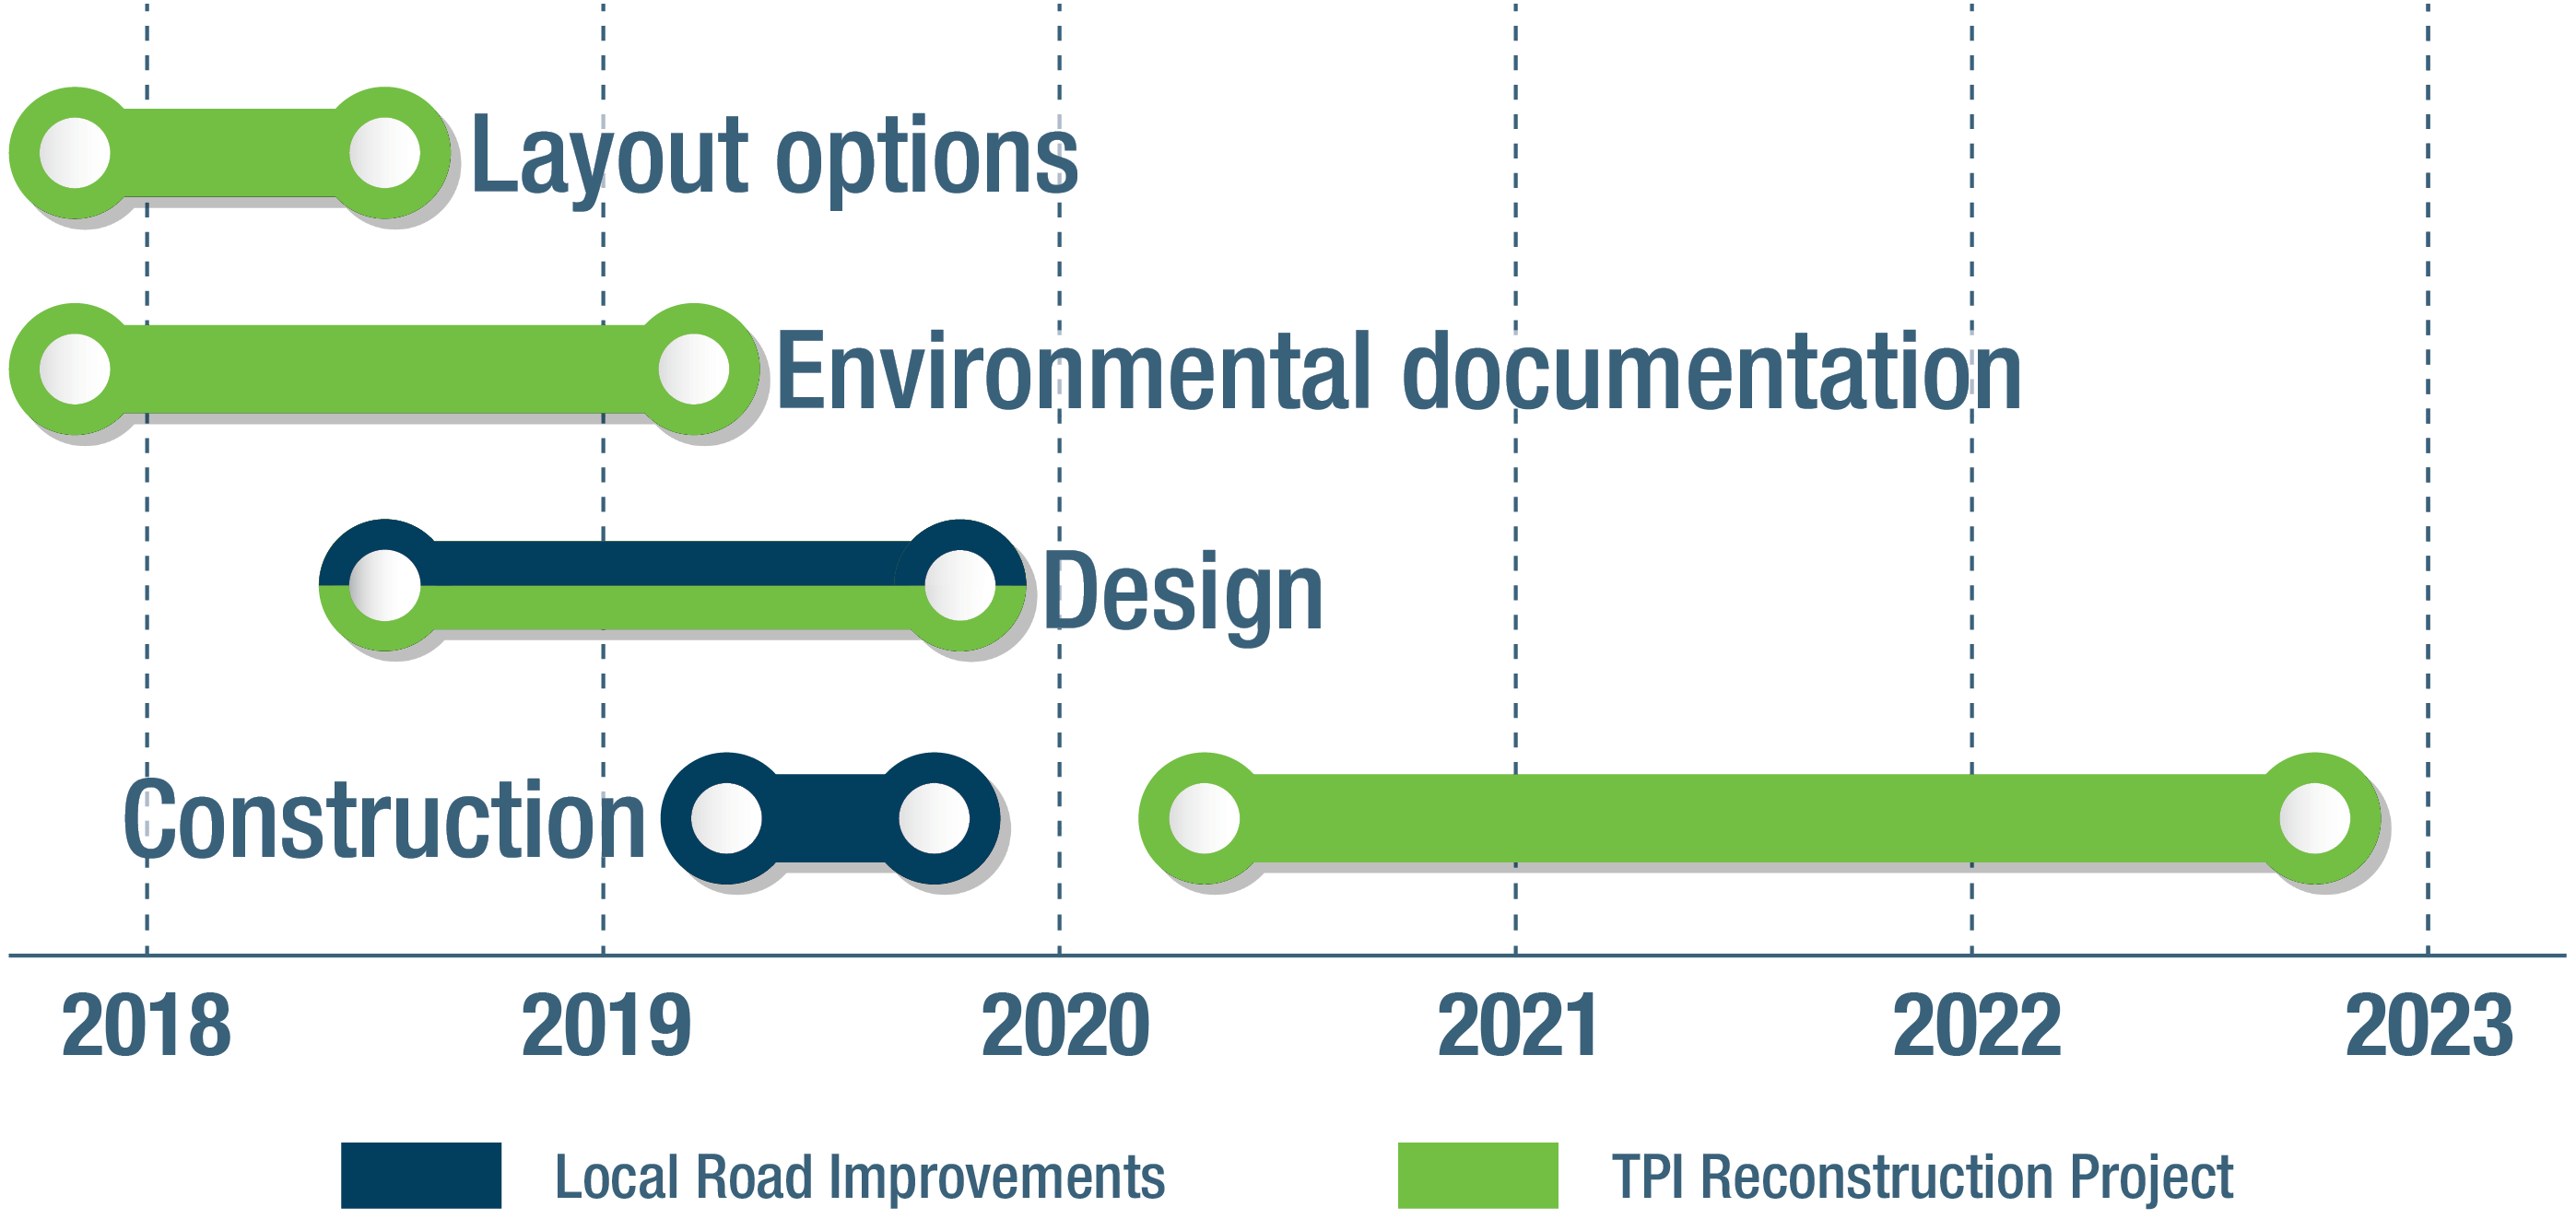 Chart outlinging the relative timeline of the project, with layout options happening in 2018-19, environmental documentation happening from 2018 until mid-2019, design happening from mid-2018 to 2020, and construction happening from mid 2020 until the end of 2023.